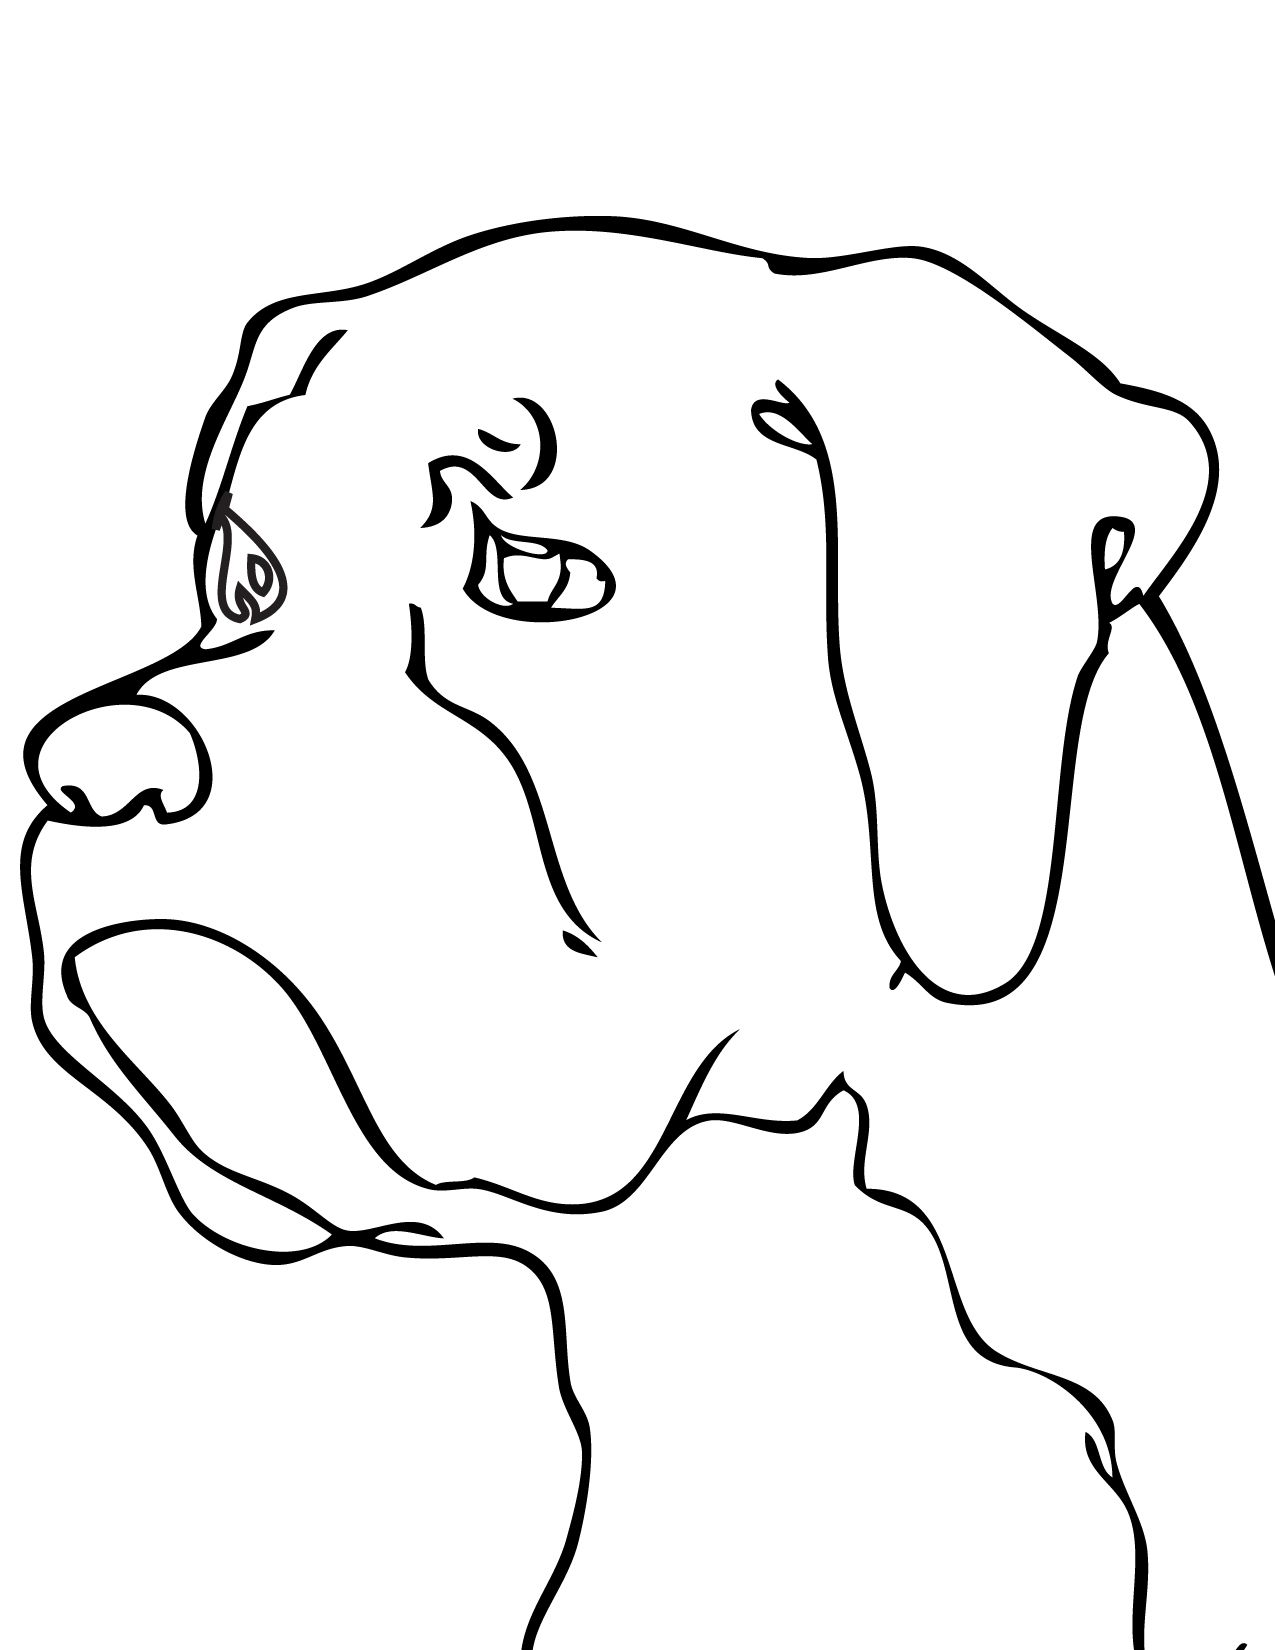 Dog Coloring Pages | Print This Page | Dogs Coloring Pages | Coloring Pages